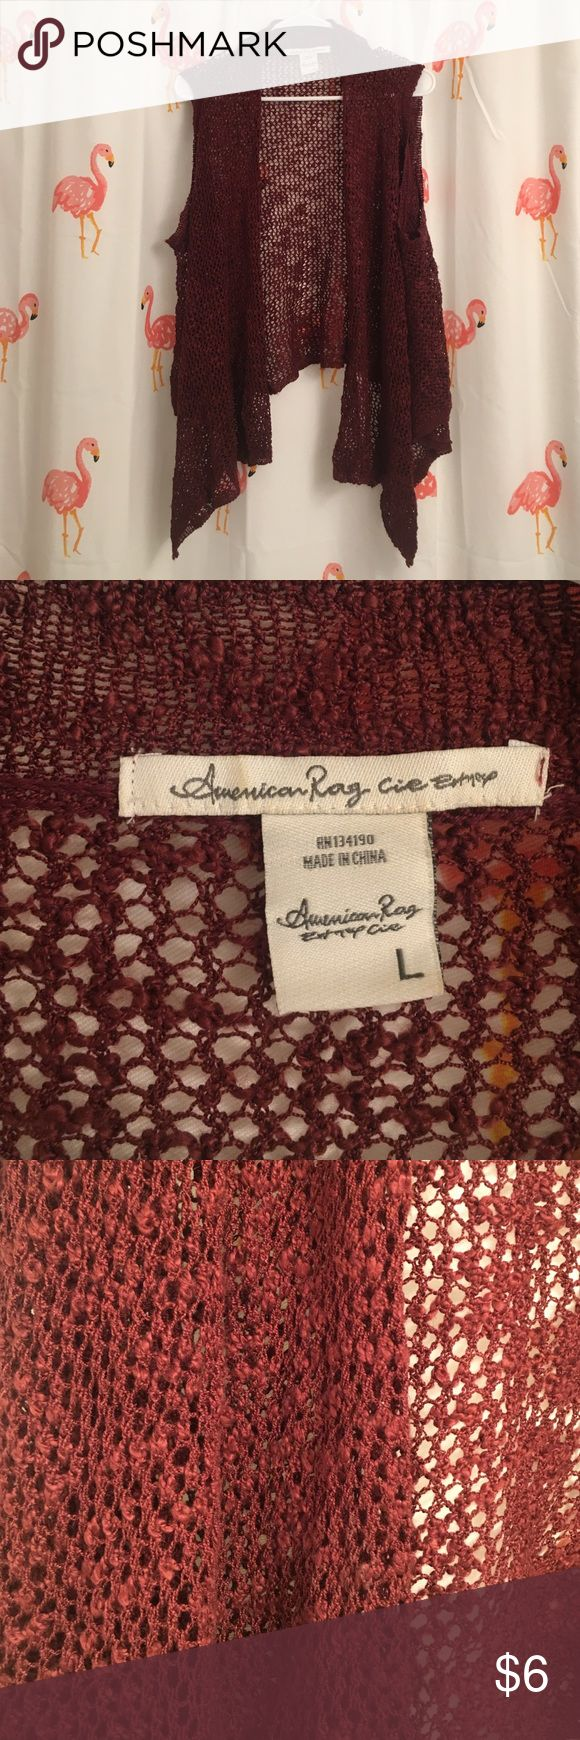 American rag knit vest This burgundy is a lovely fall color. Perfect for the bohemian look. Wide knit with wide arm holes. American Rag Tops